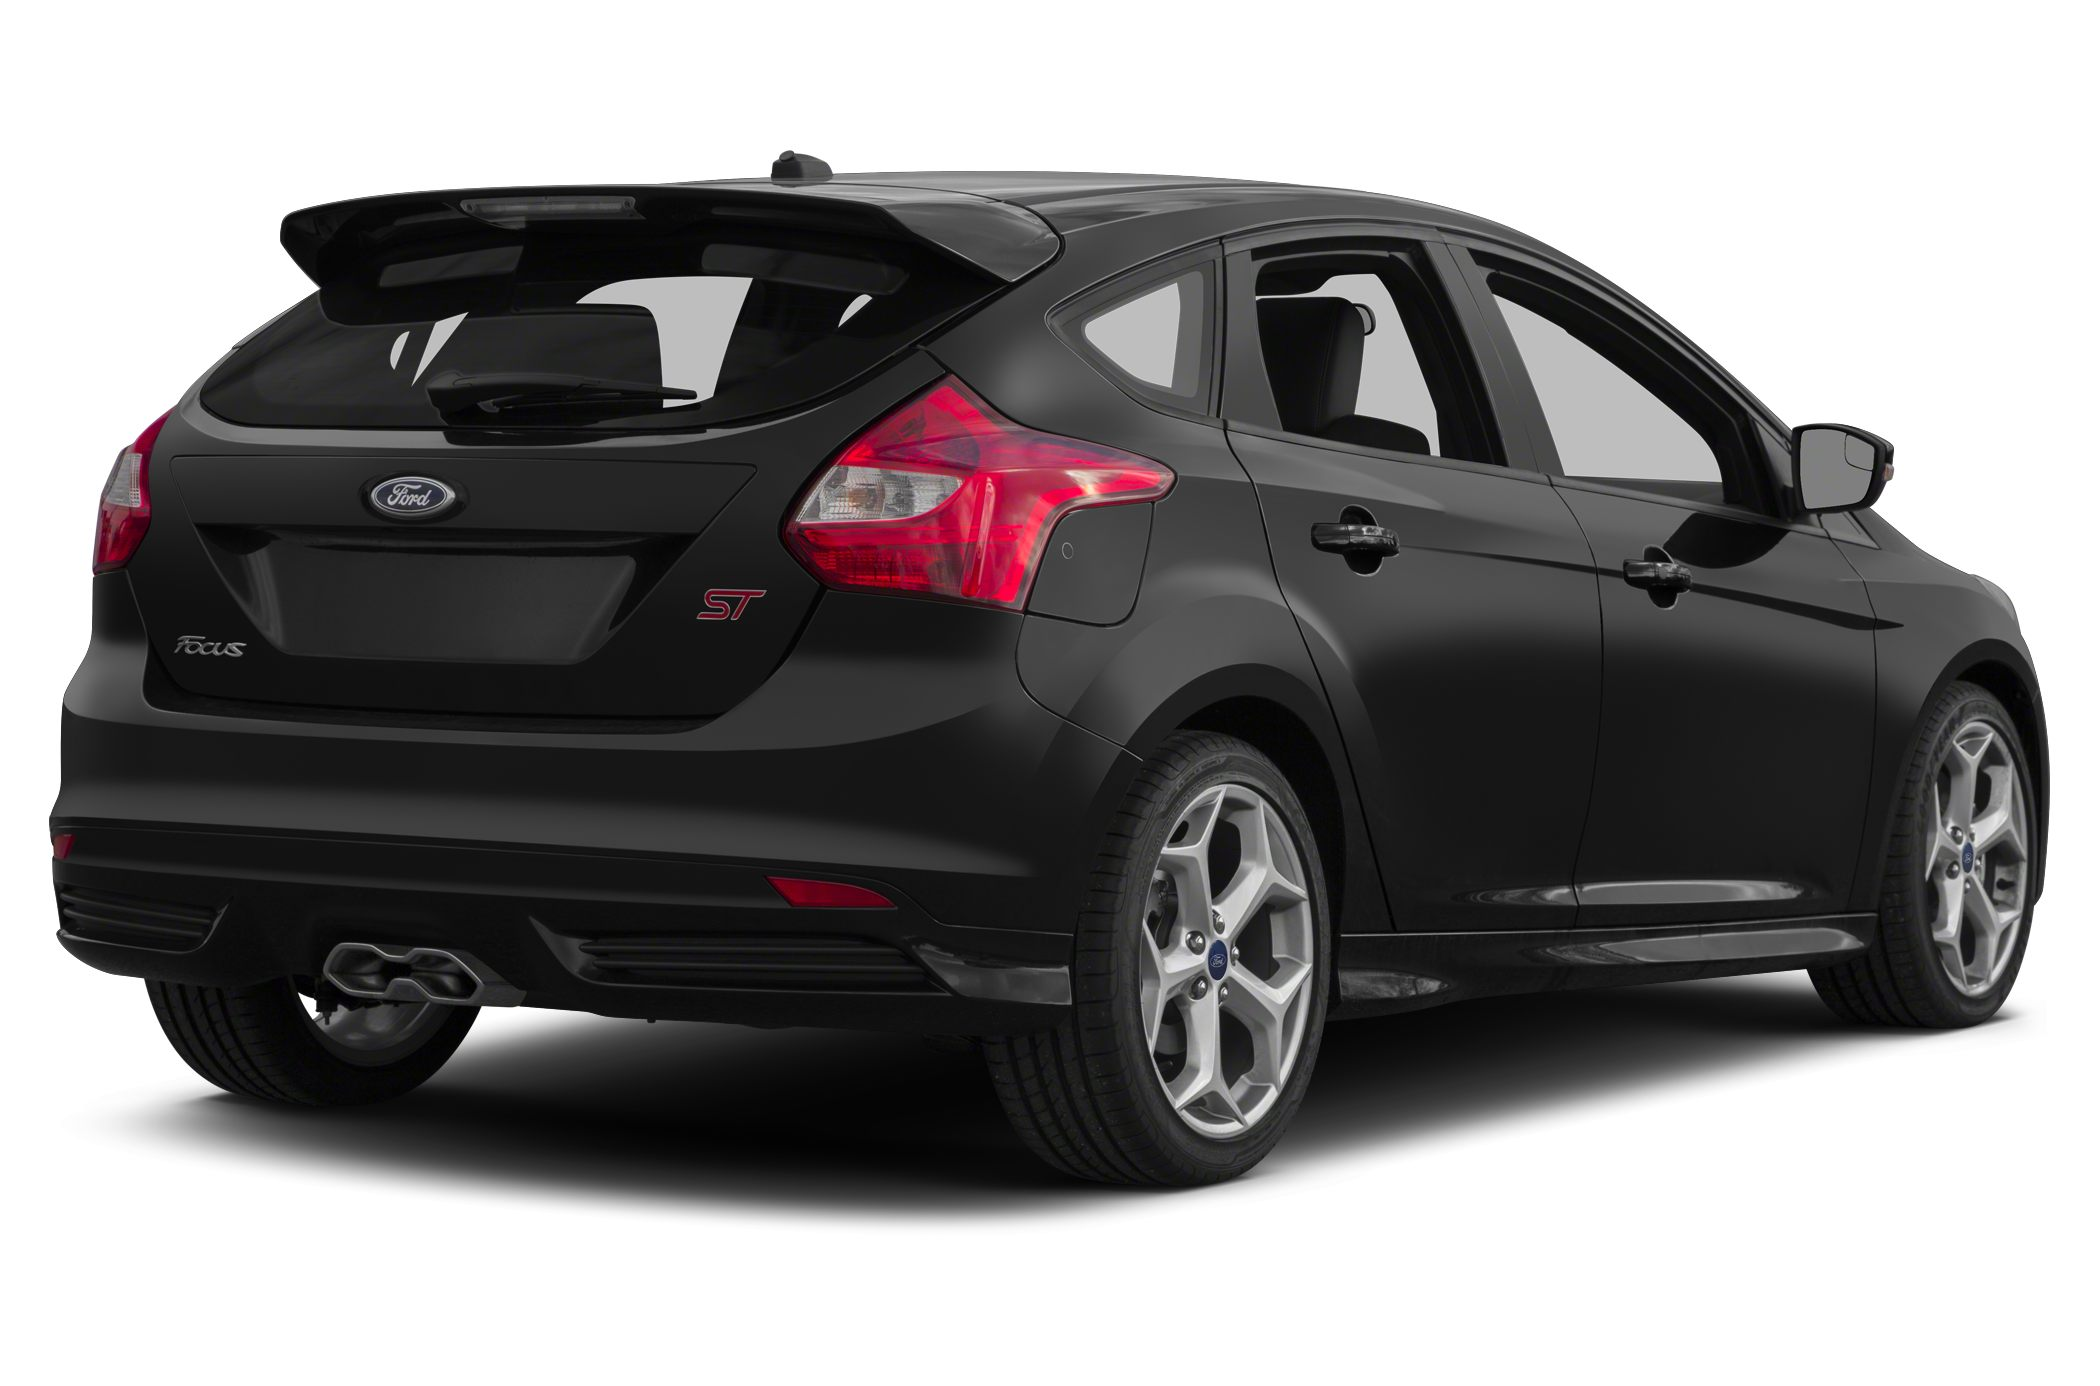 2014 ford focus hatchback ii pictures information and specs auto. Black Bedroom Furniture Sets. Home Design Ideas